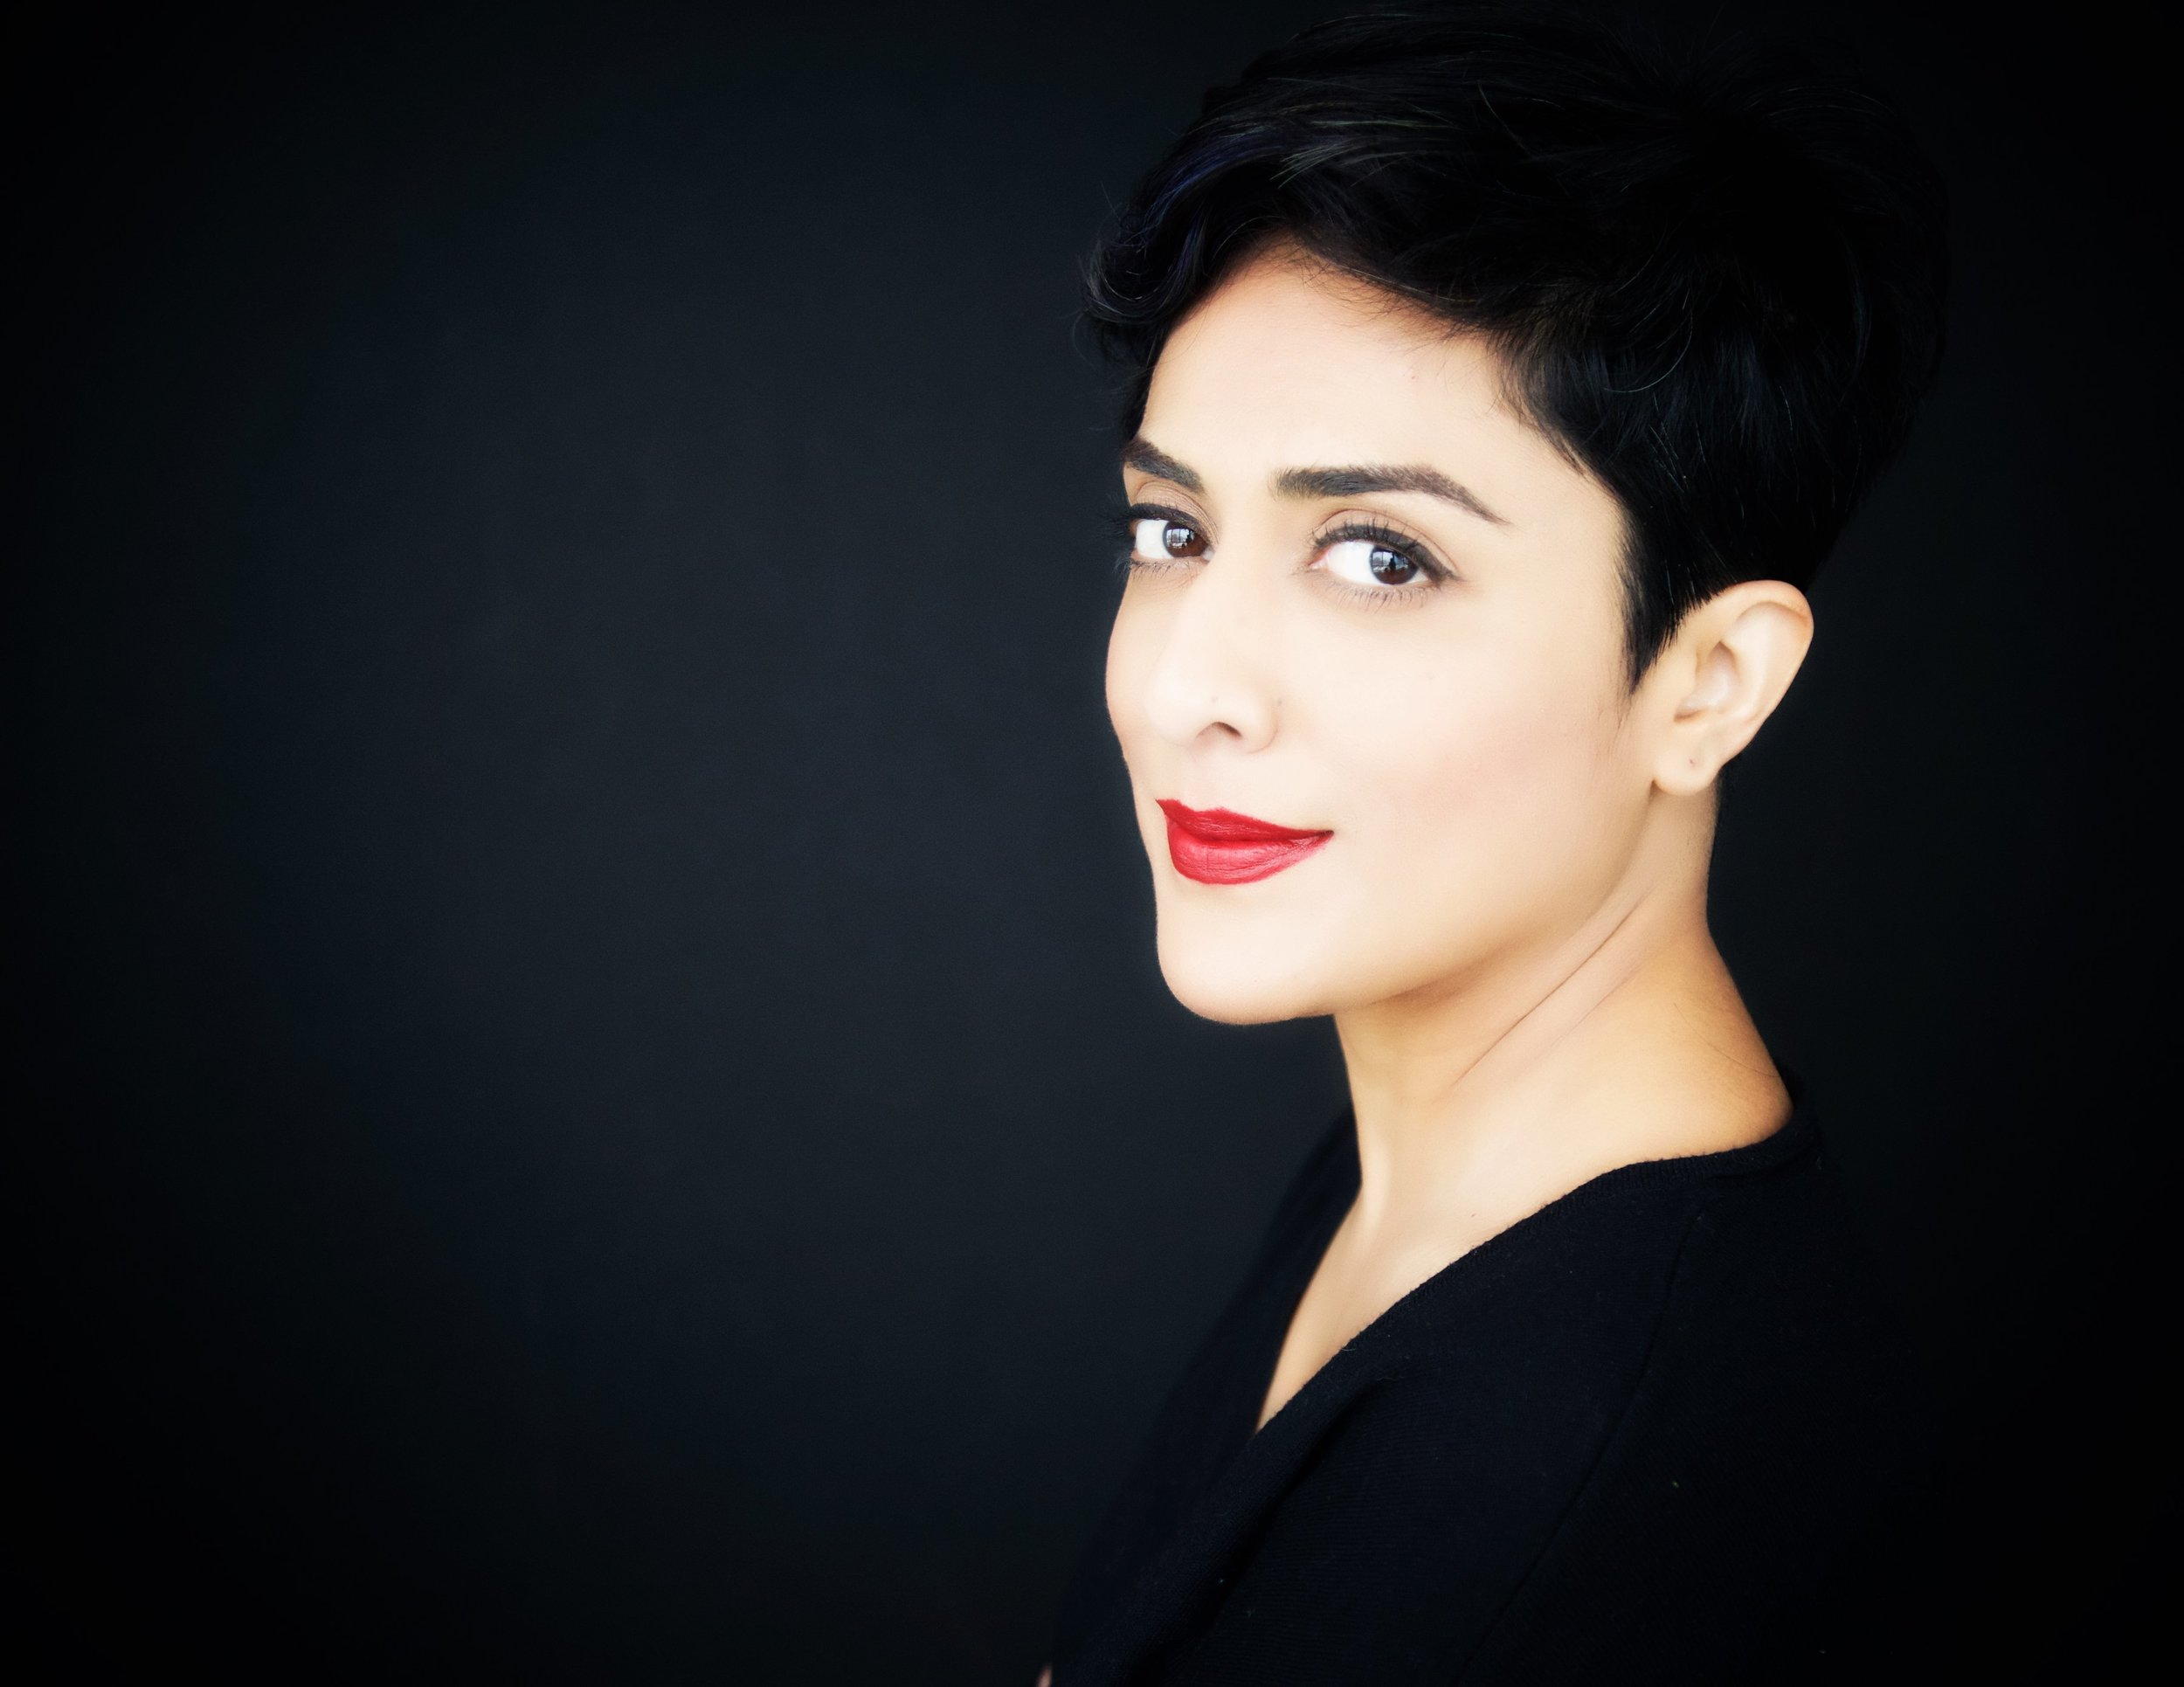 Saadia Muzaffar is a tech entrepreneur,author, and passionate advocate of responsible innovation, decent work for everyone, and prosperity of immigrant talent in STEM. -